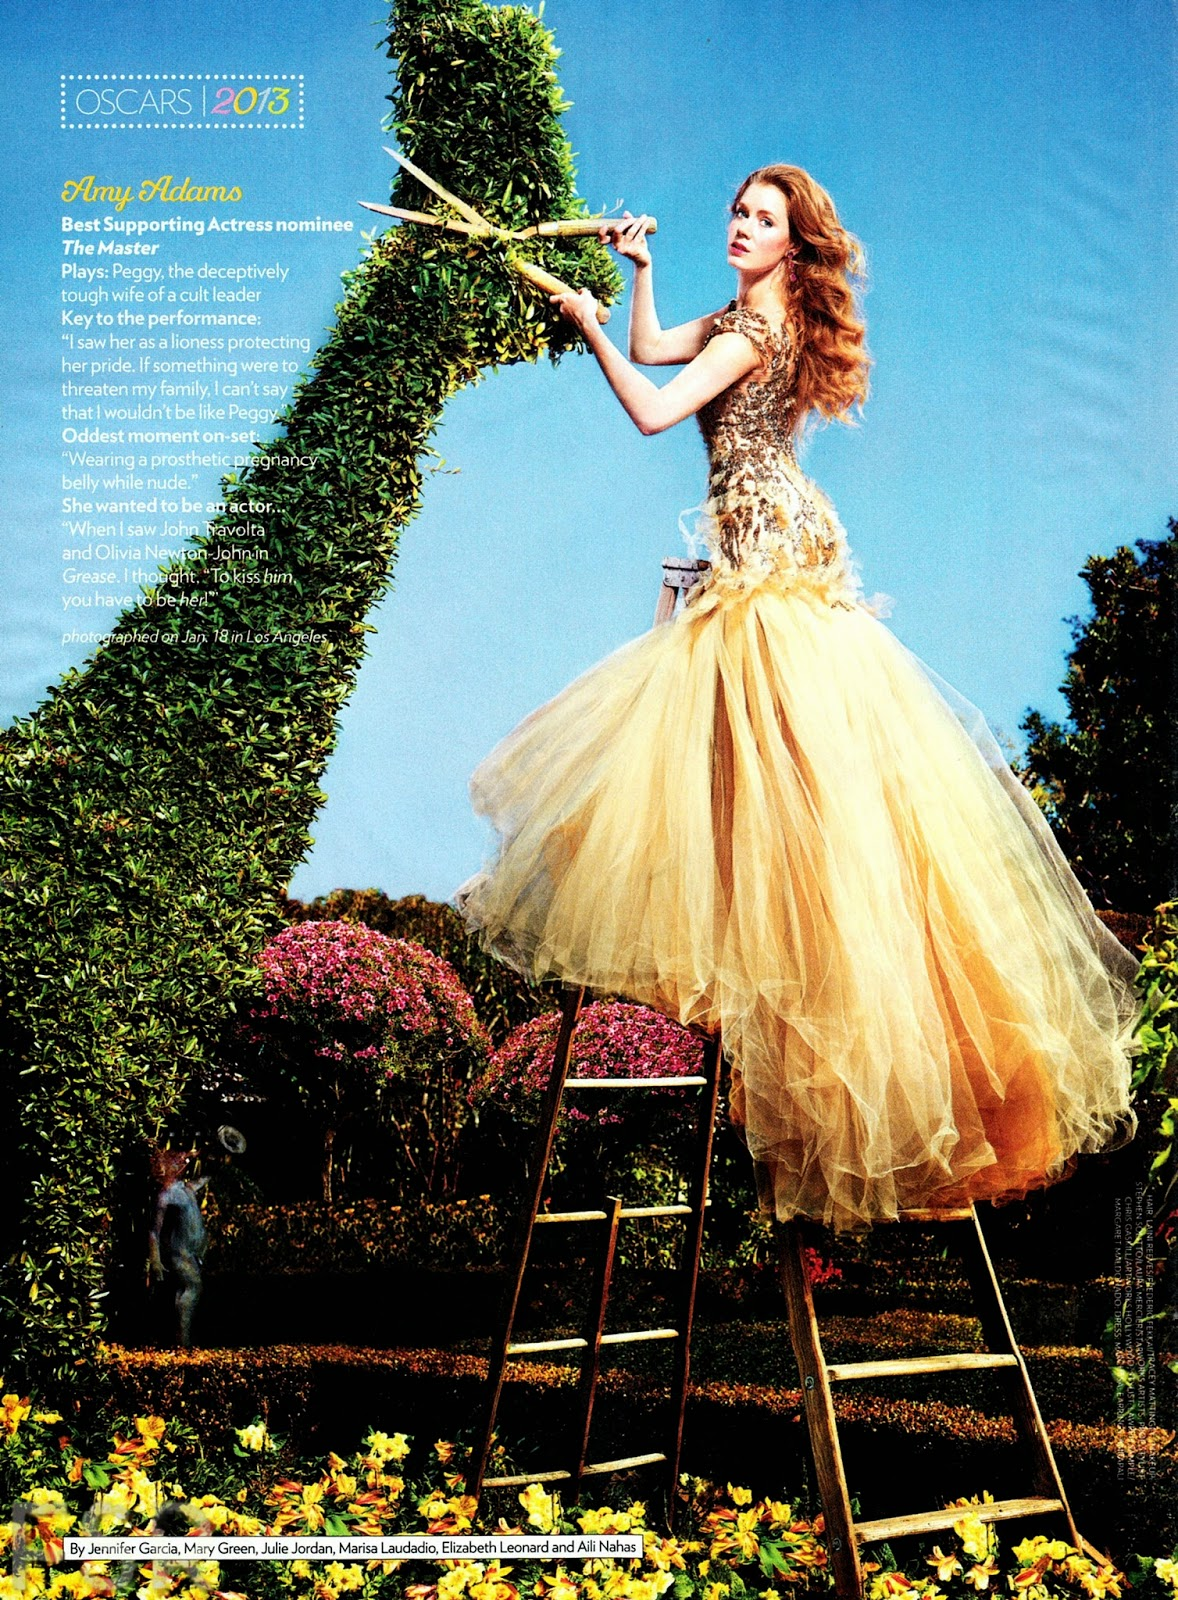 Magazine Photoshoot : Jessica Chastain & Amy Adams Photoshot For People Magazine February 2013 Issue